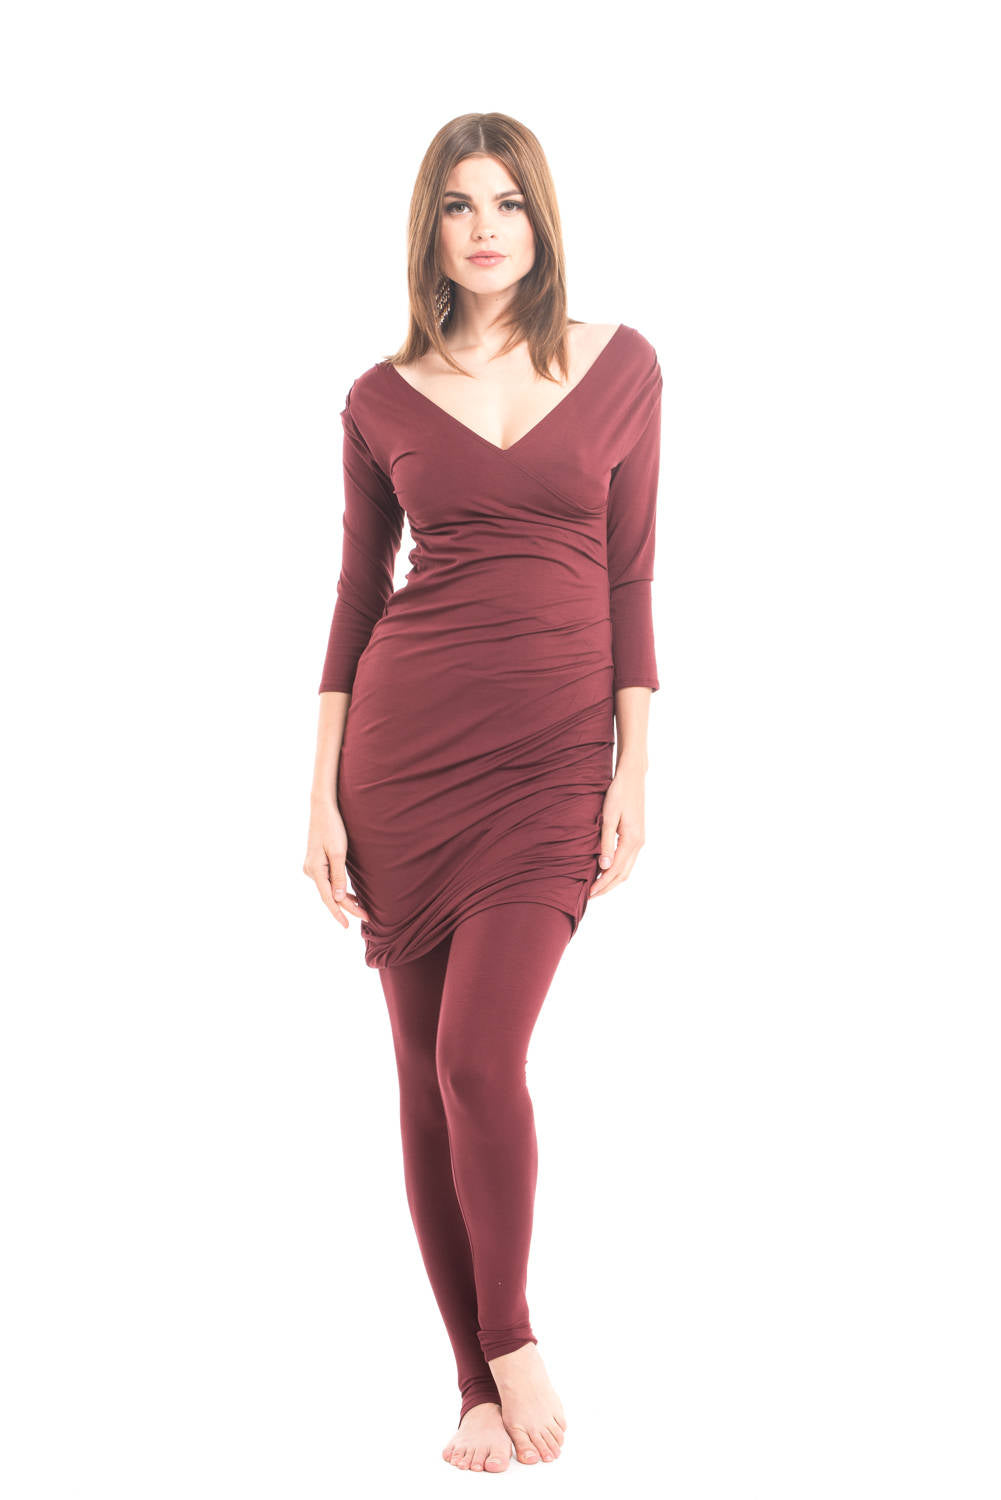 Bamboo Crossover Dress Burgundy - MUDRA